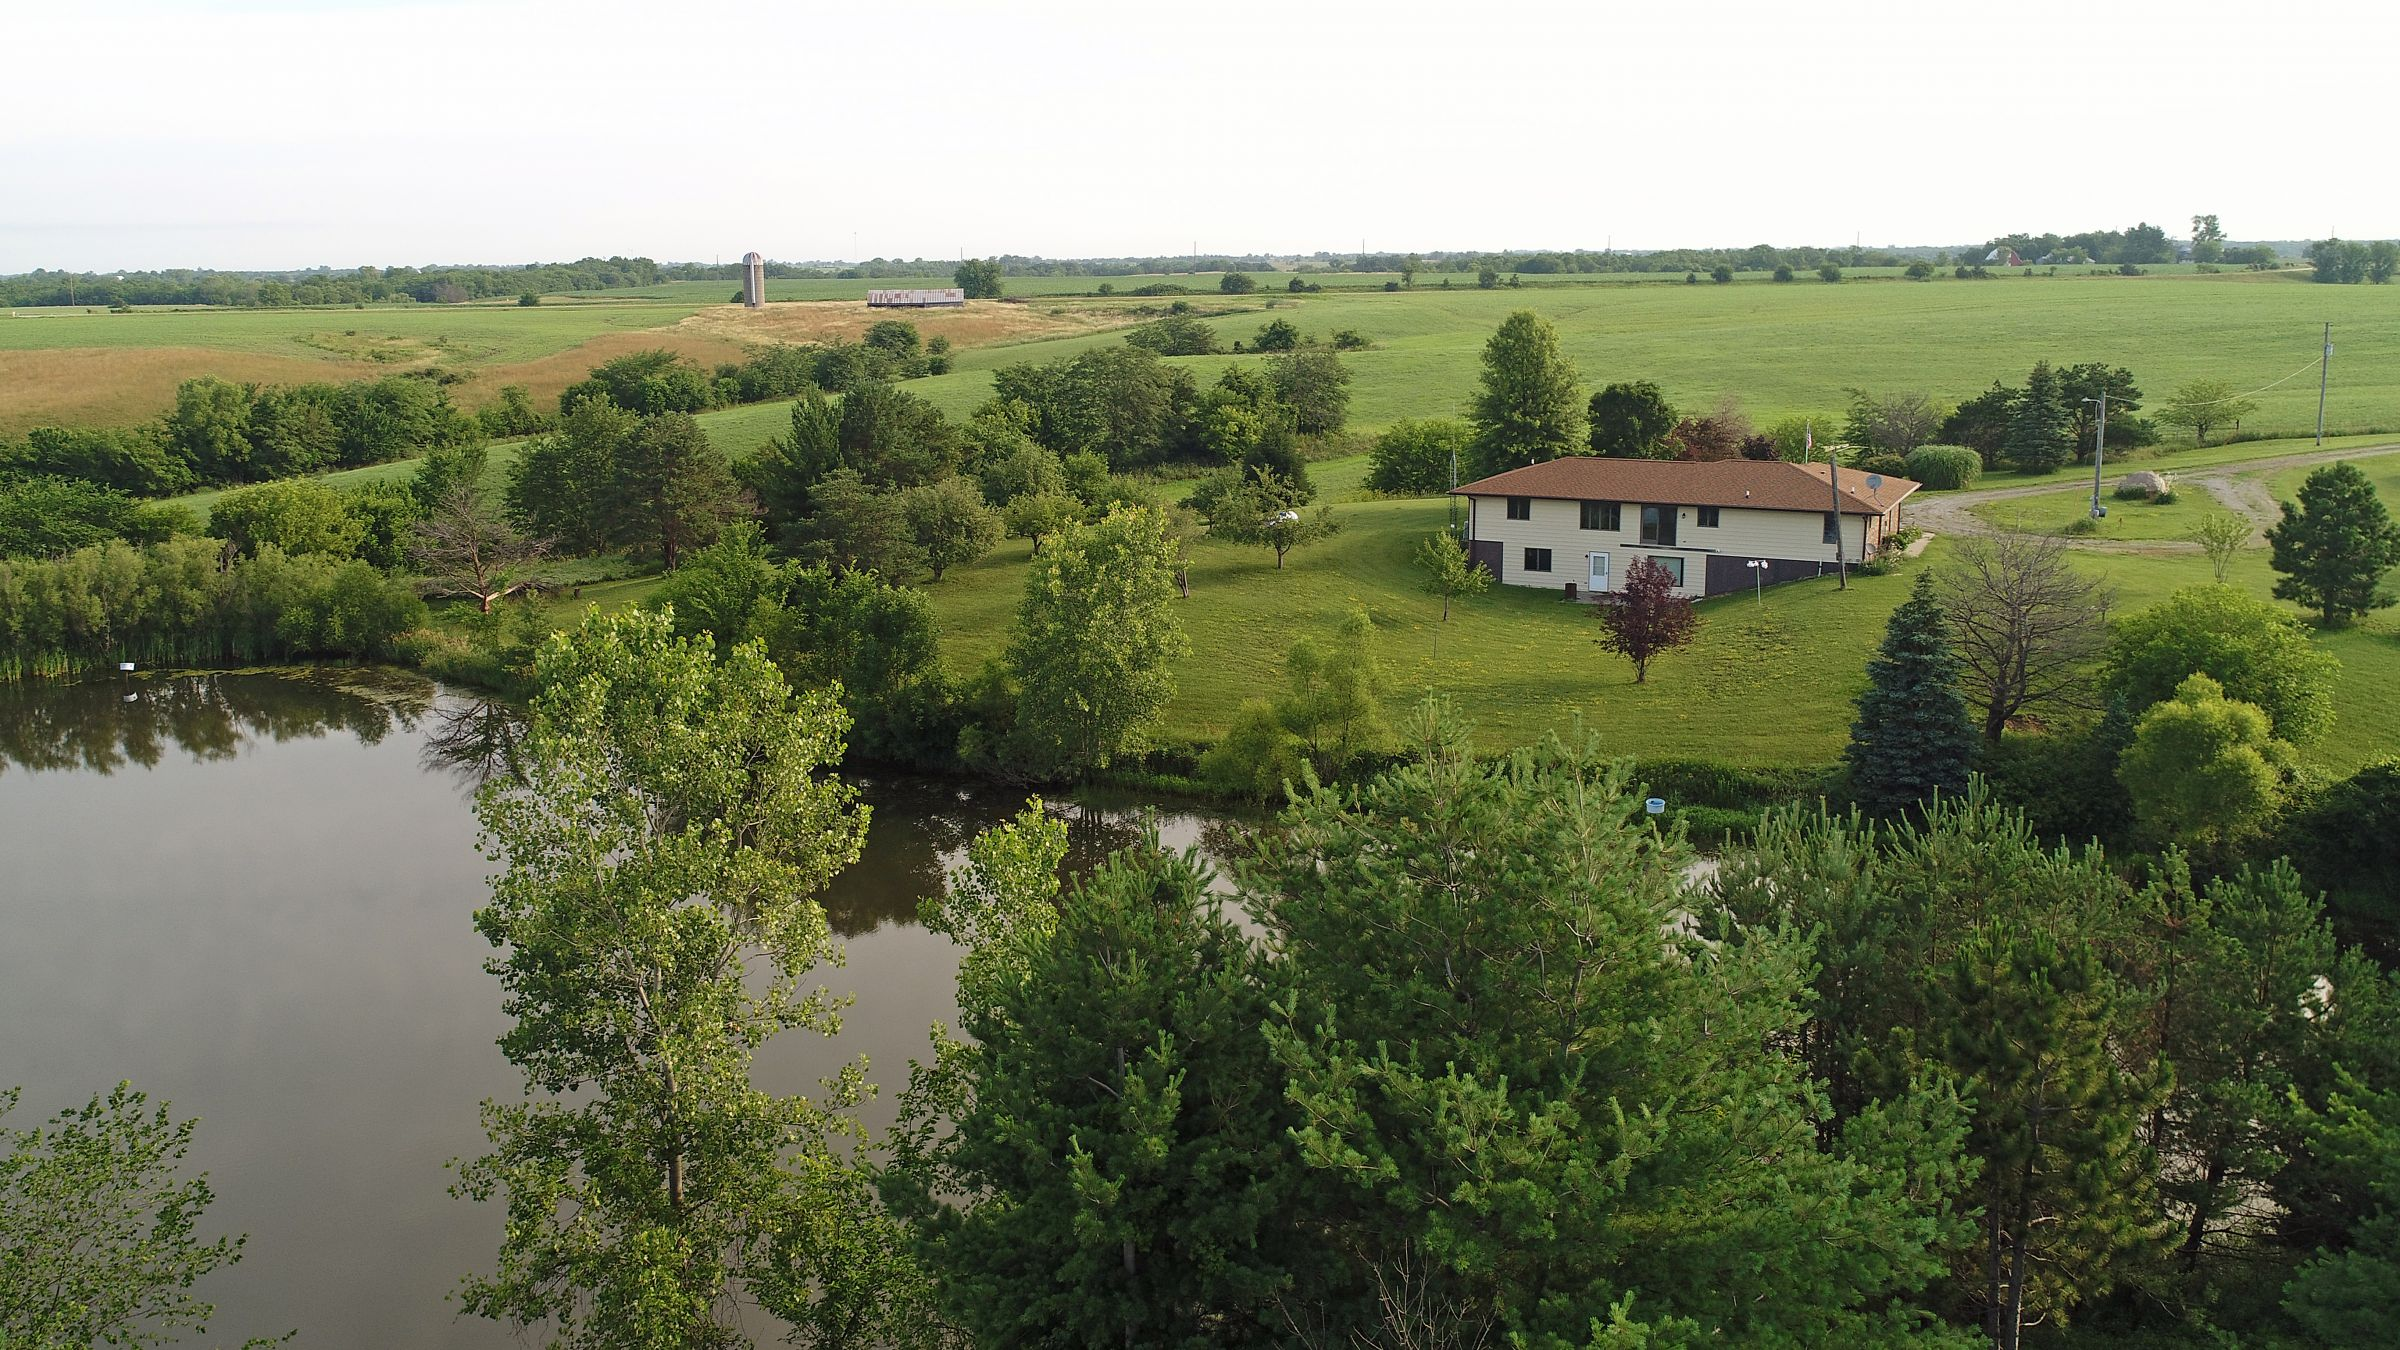 residential-lucas-county-iowa-9-acres-listing-number-15618-1-2021-06-30-170825.JPG